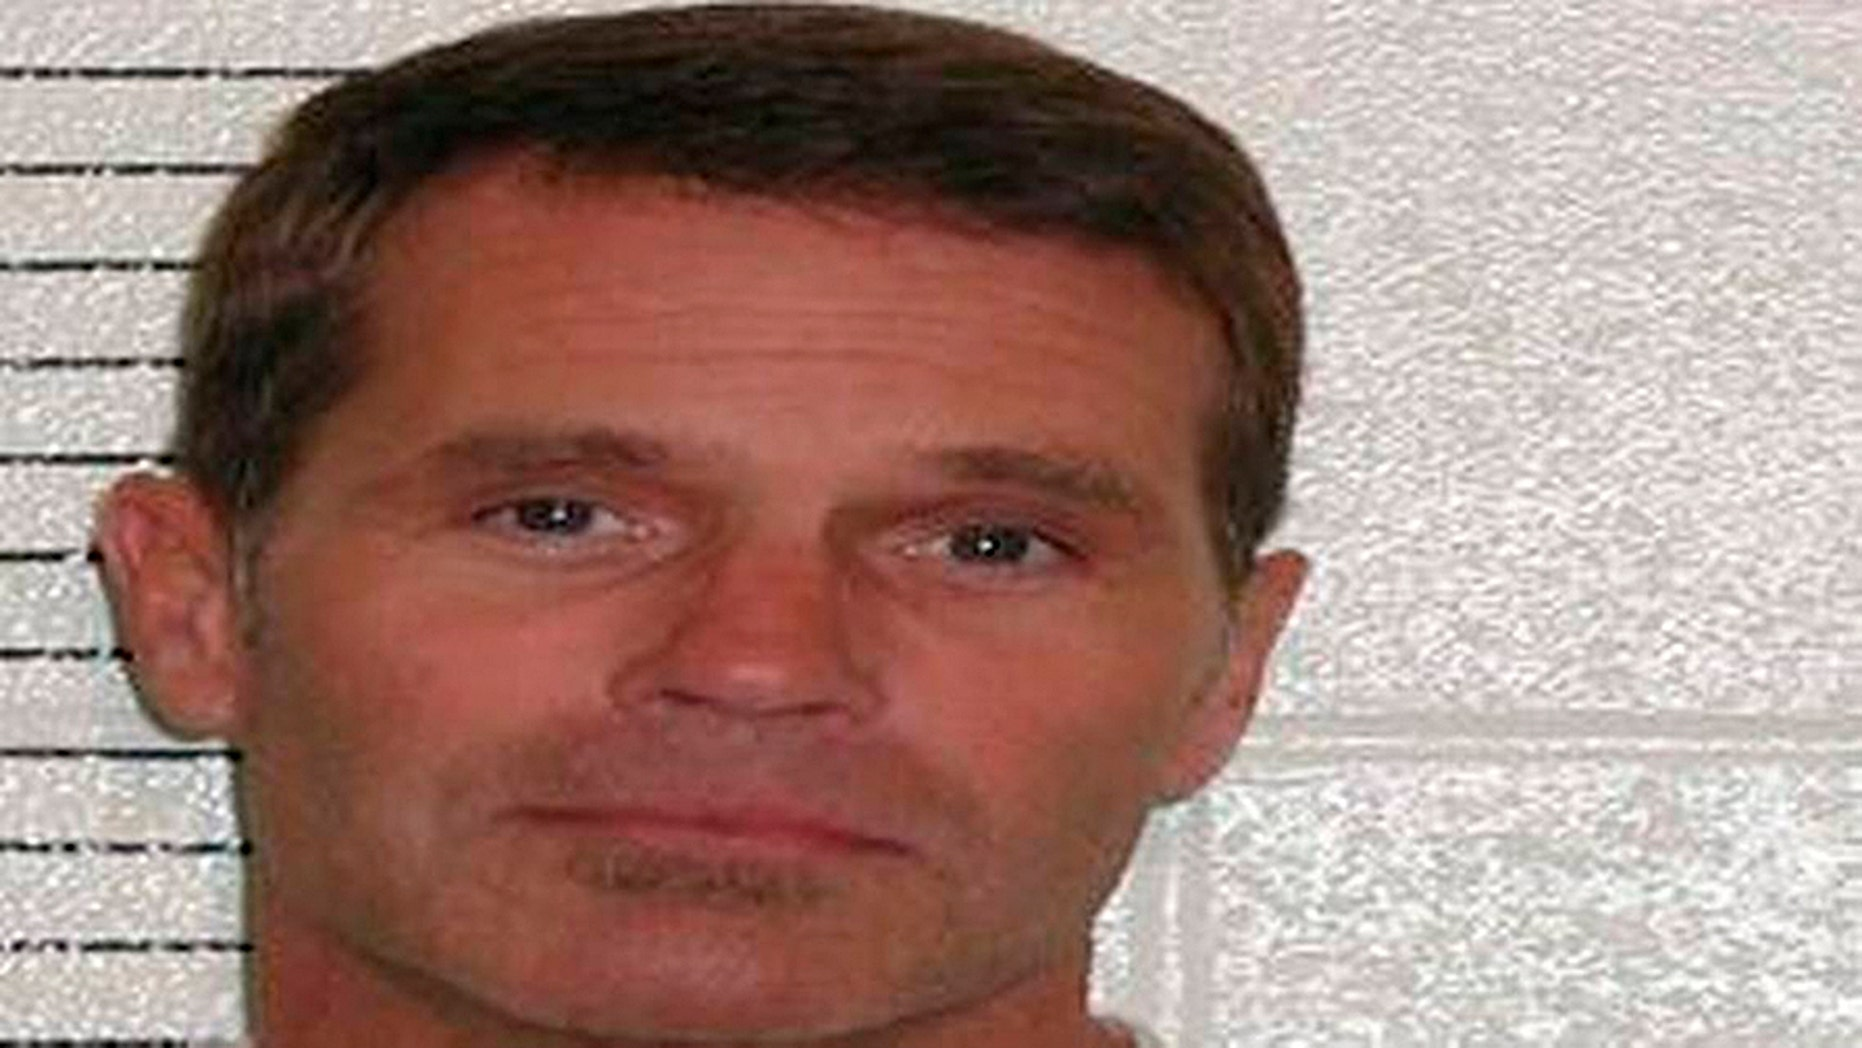 Darren Berg walked away from a minimum-security work camp on Wednesday.